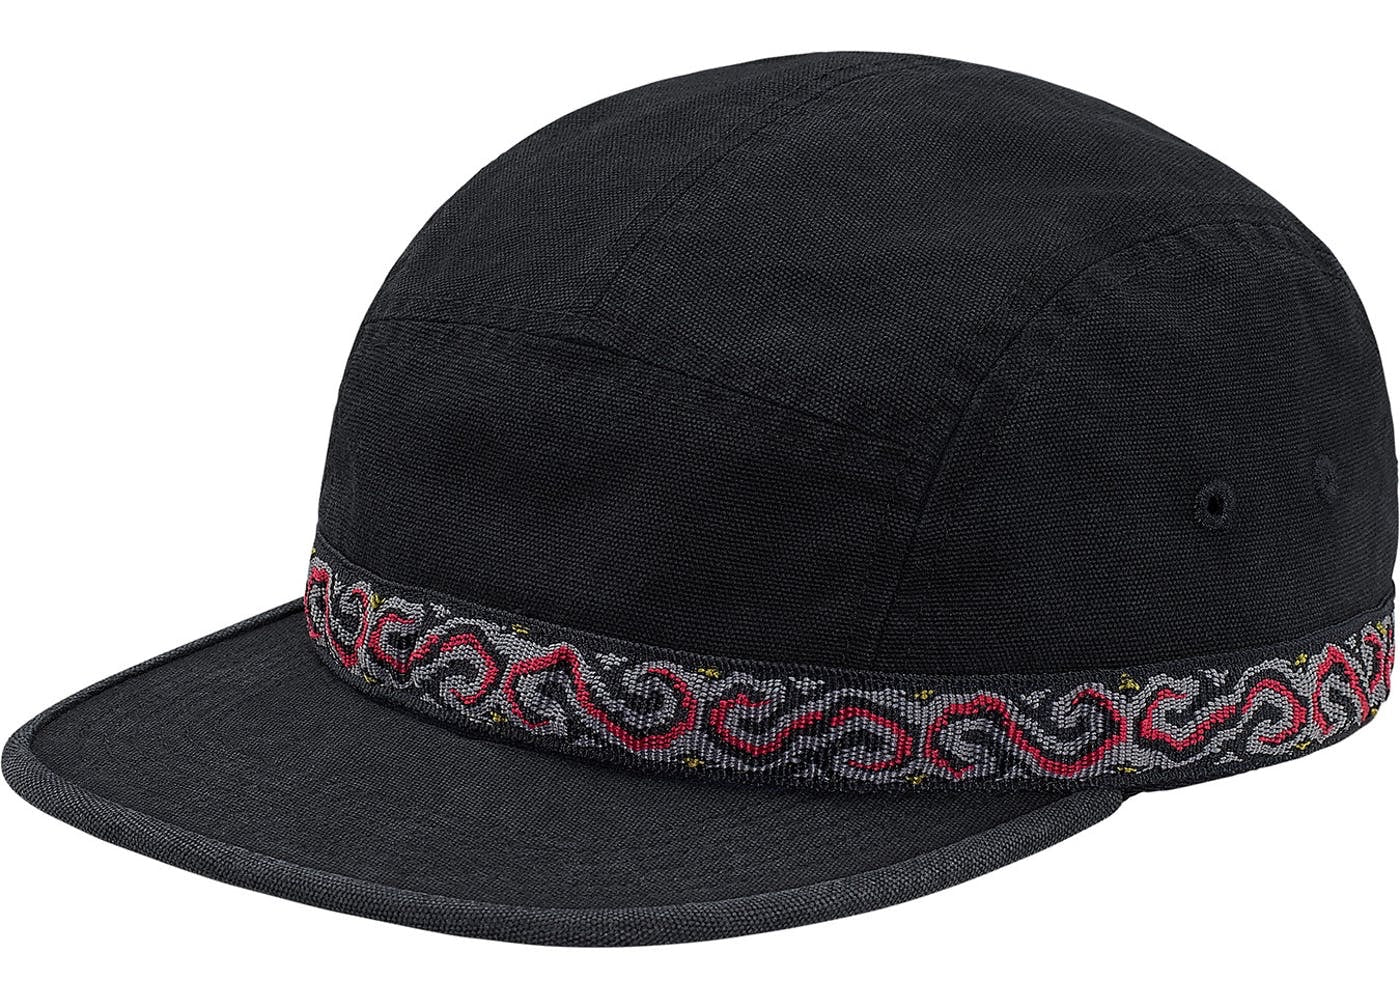 SUPREME - WILD TAPE 5 PANEL HAT - THE SPOT BOUTIQUE